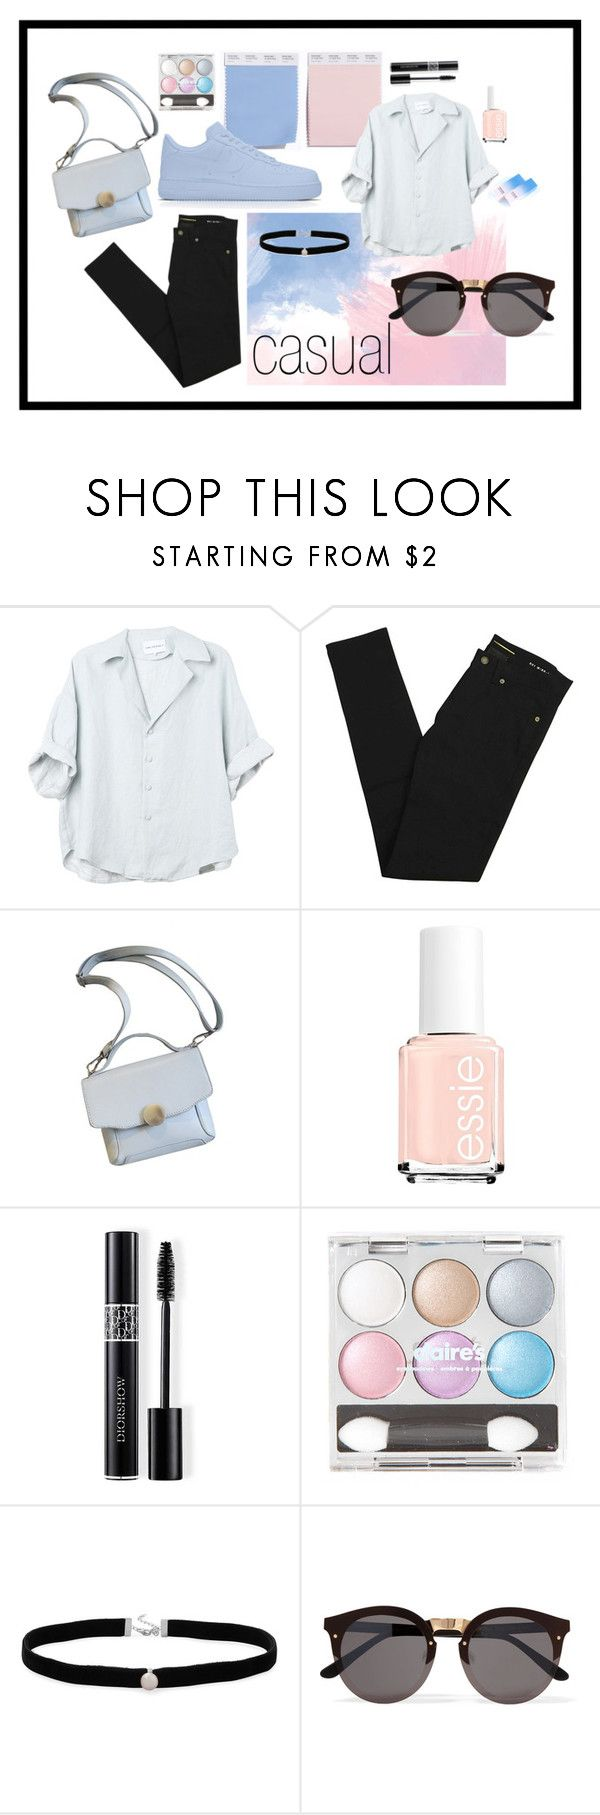 """Sin título #248"" by camilazeballo on Polyvore featuring moda, Yves Saint Laurent, Christian Dior, Amanda Rose Collection, Illesteva y Sephora Collection"